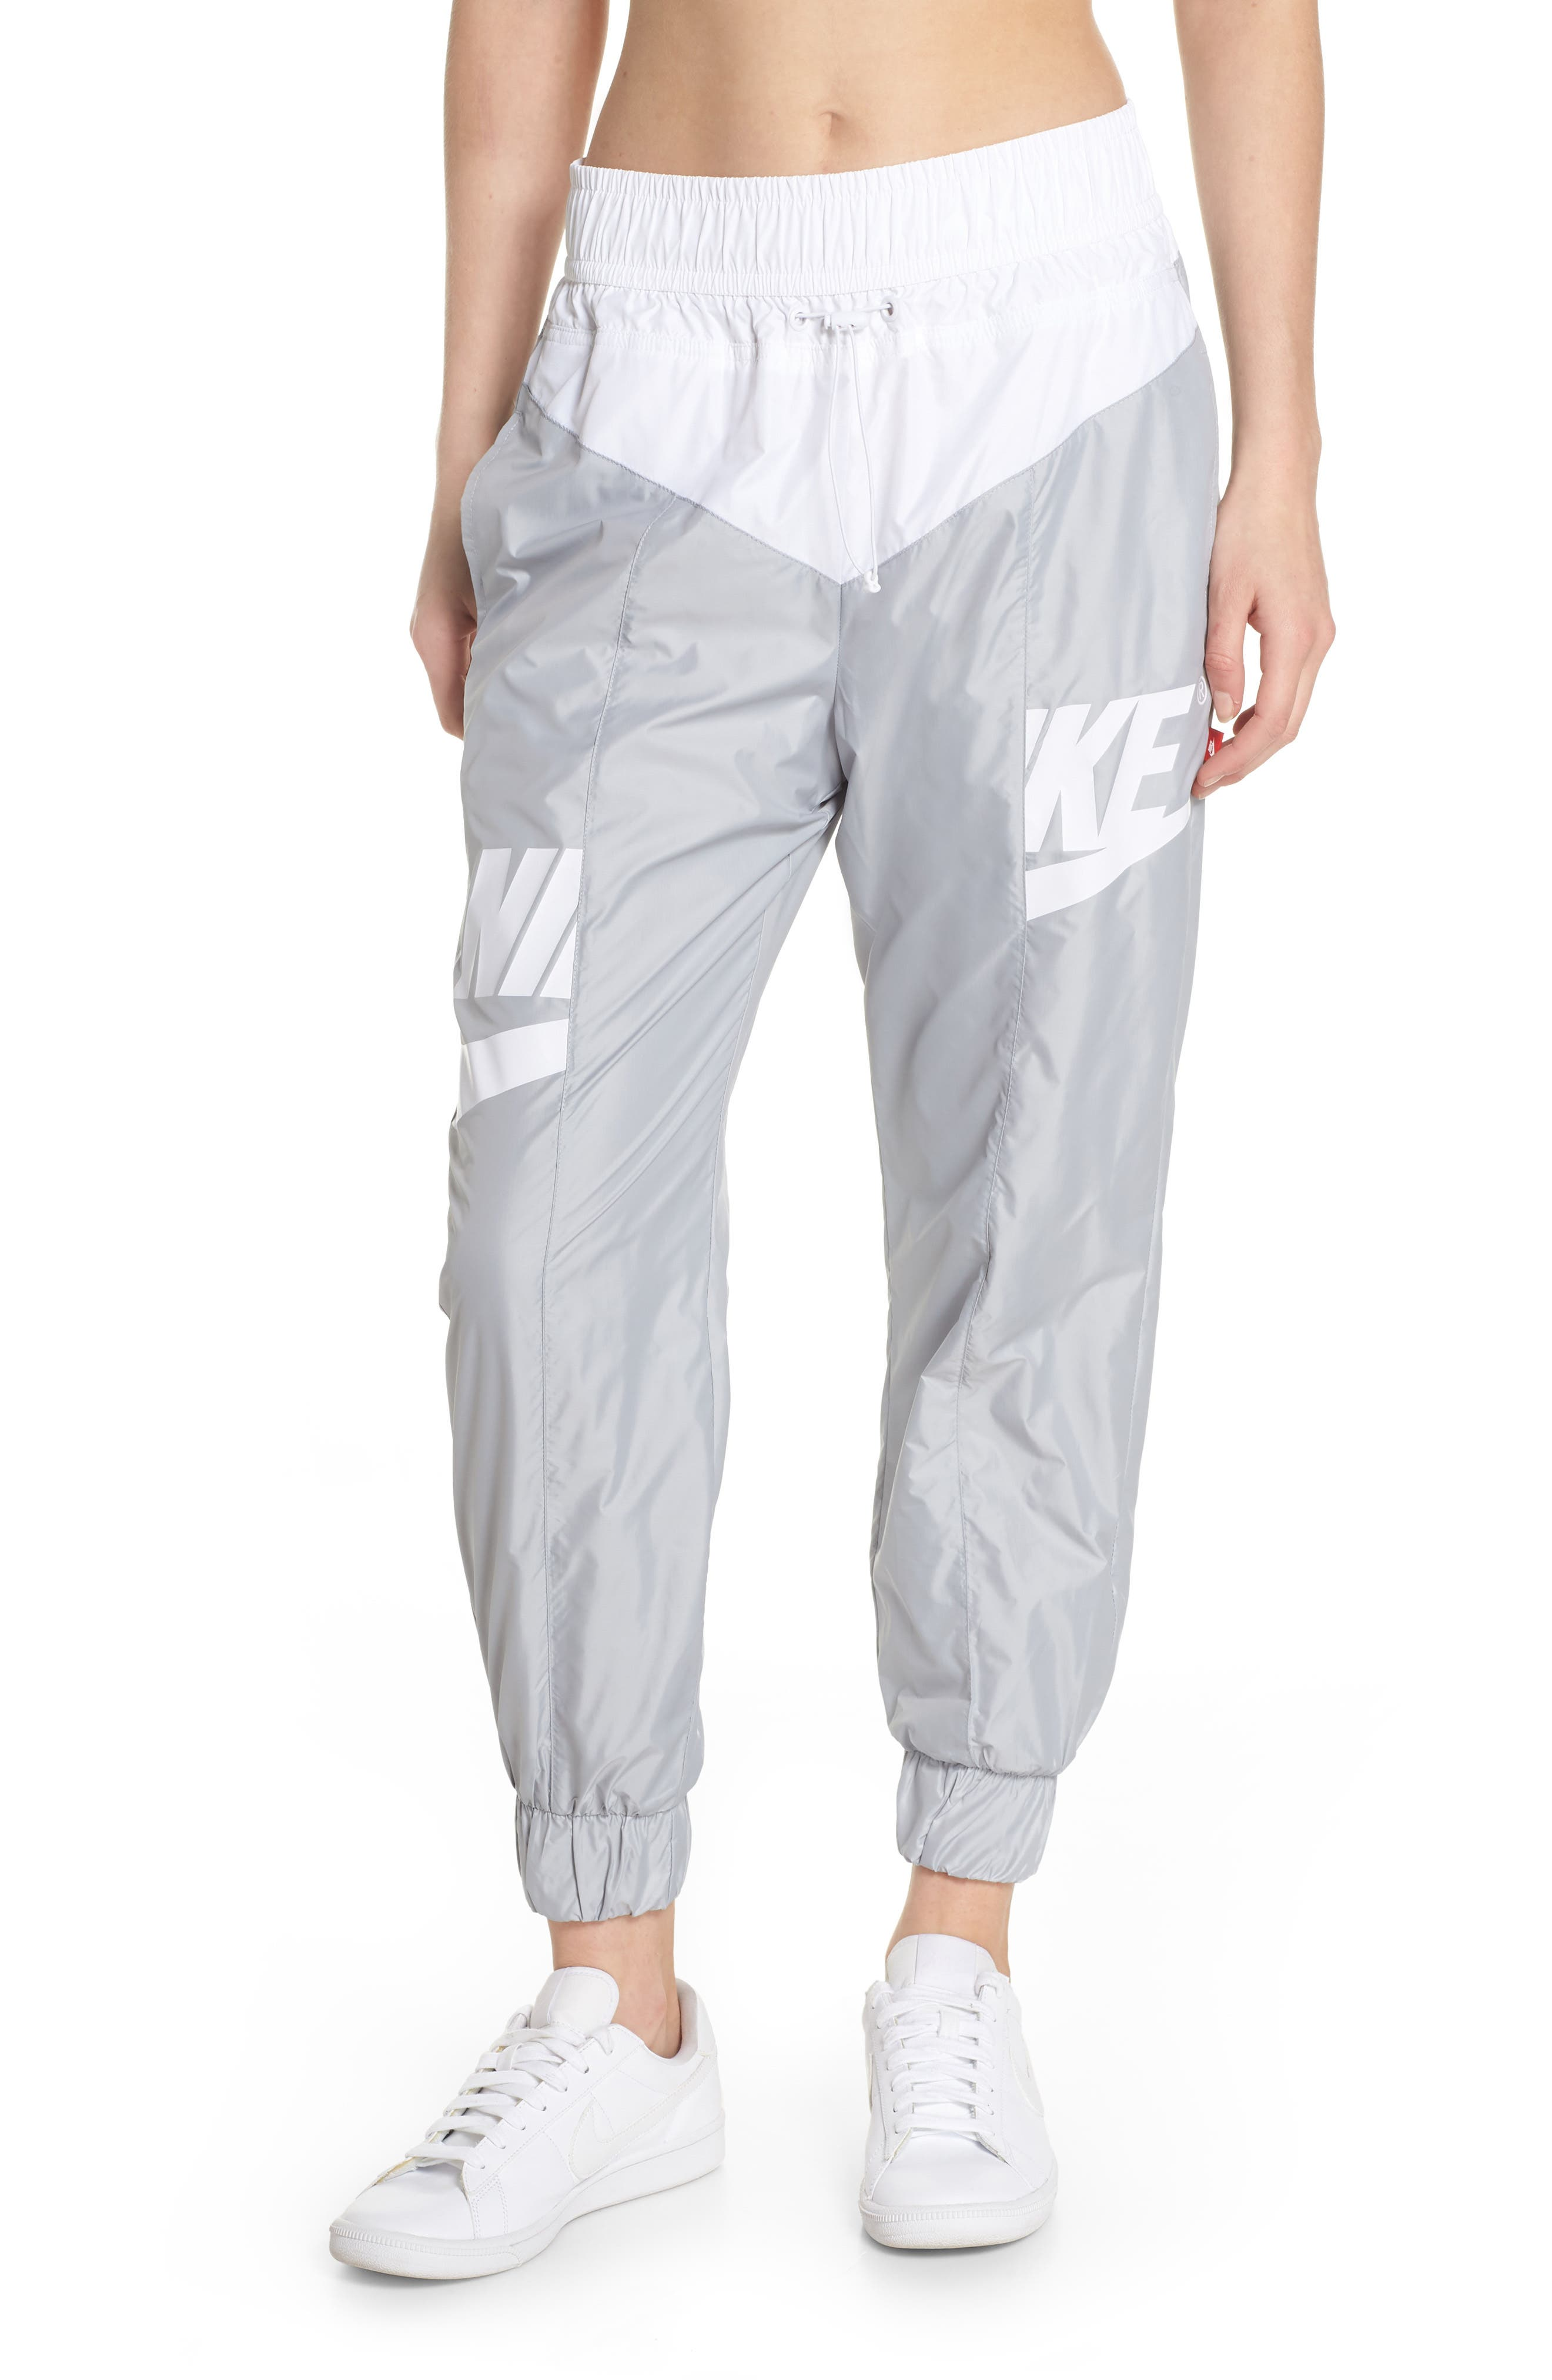 Sportswear Windrunner pants,                             Main thumbnail 1, color,                             020